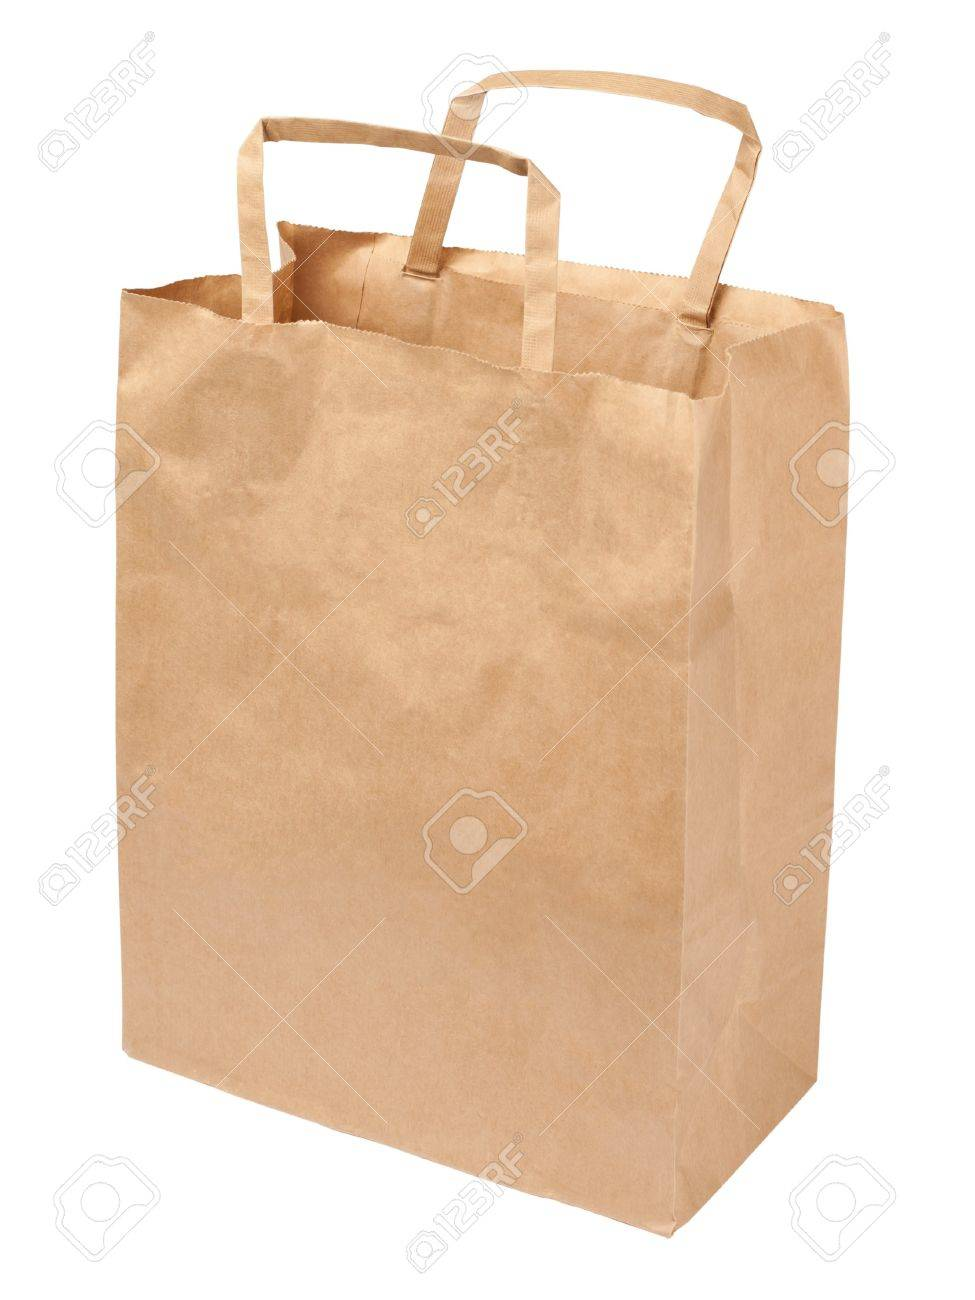 Paper bag isolated on white background Stock Photo - 8227163